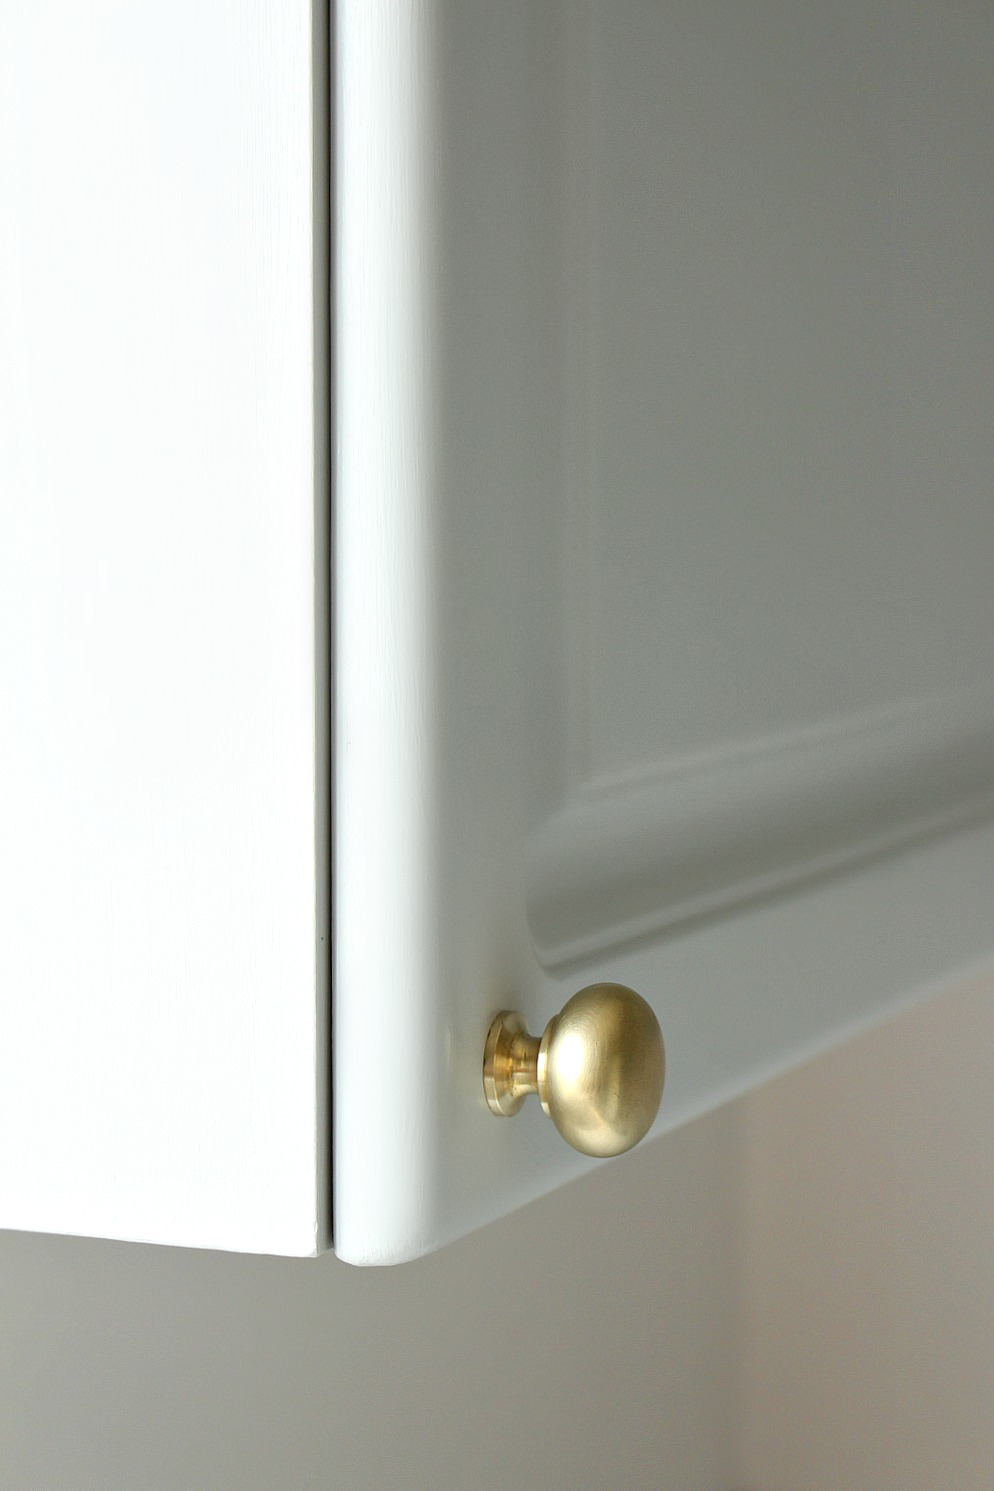 Clean Gold Knobs with Acetone